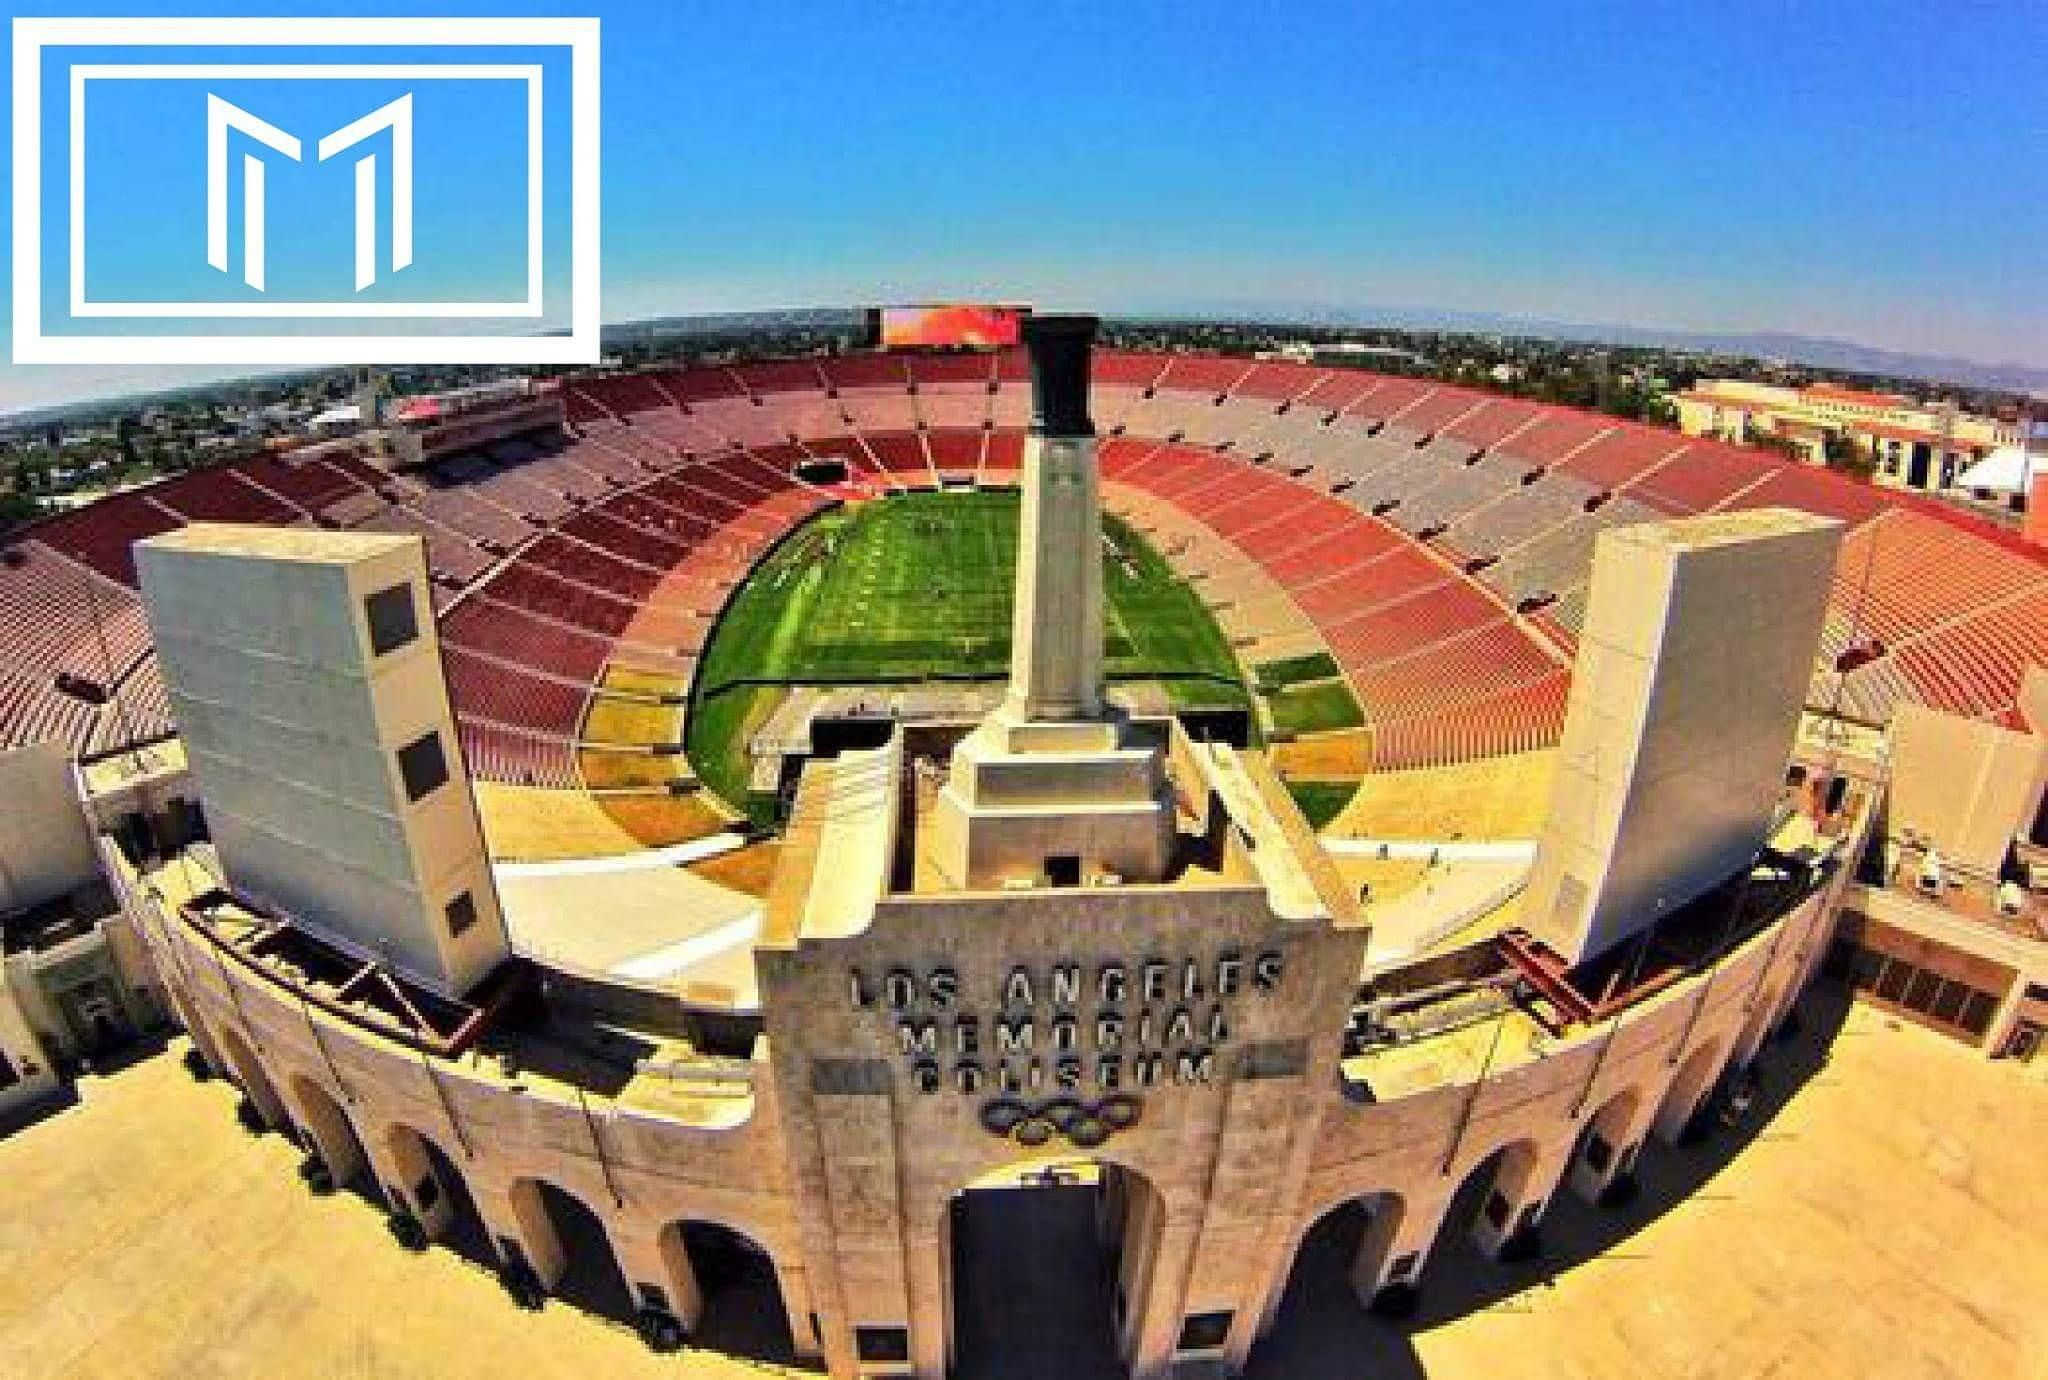 The Coliseum La Landmark Msclt Www Msclt Com Usc Trojans Football Usc Trojans Usc Athletics